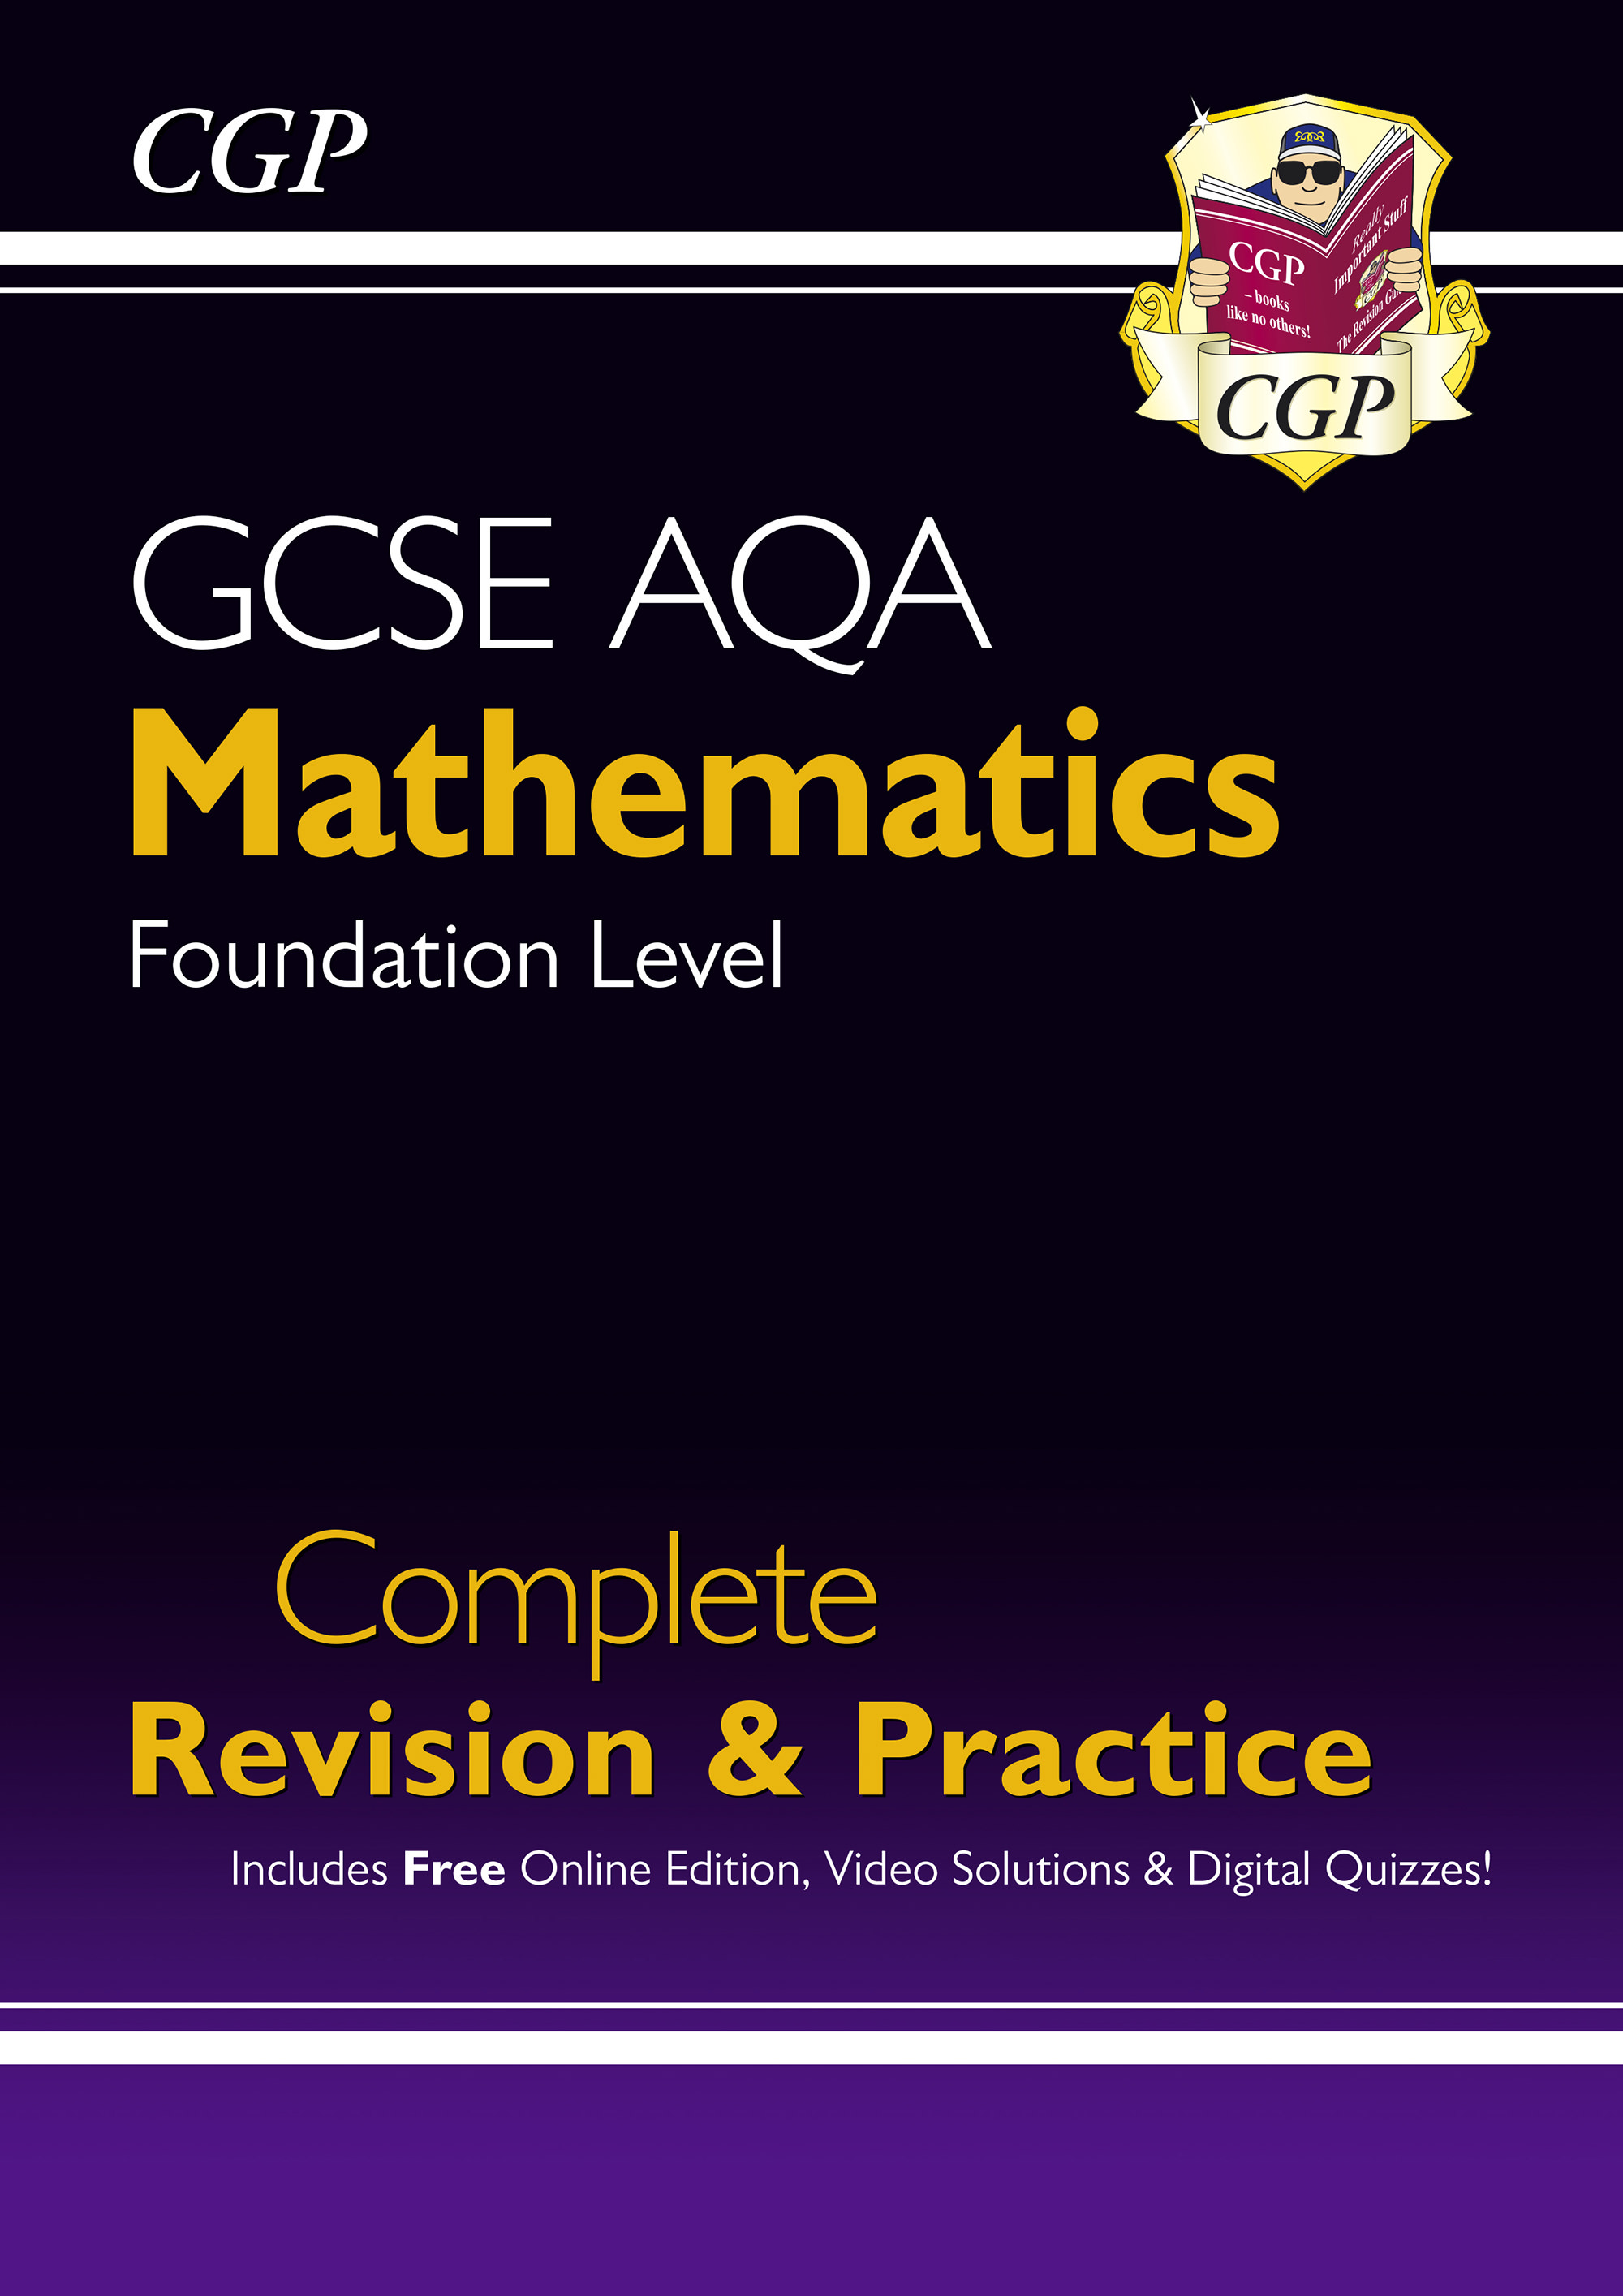 MQFS42 - New 2021 GCSE Maths AQA Complete Revision & Practice: Foundation inc Online Ed, Videos & Qu